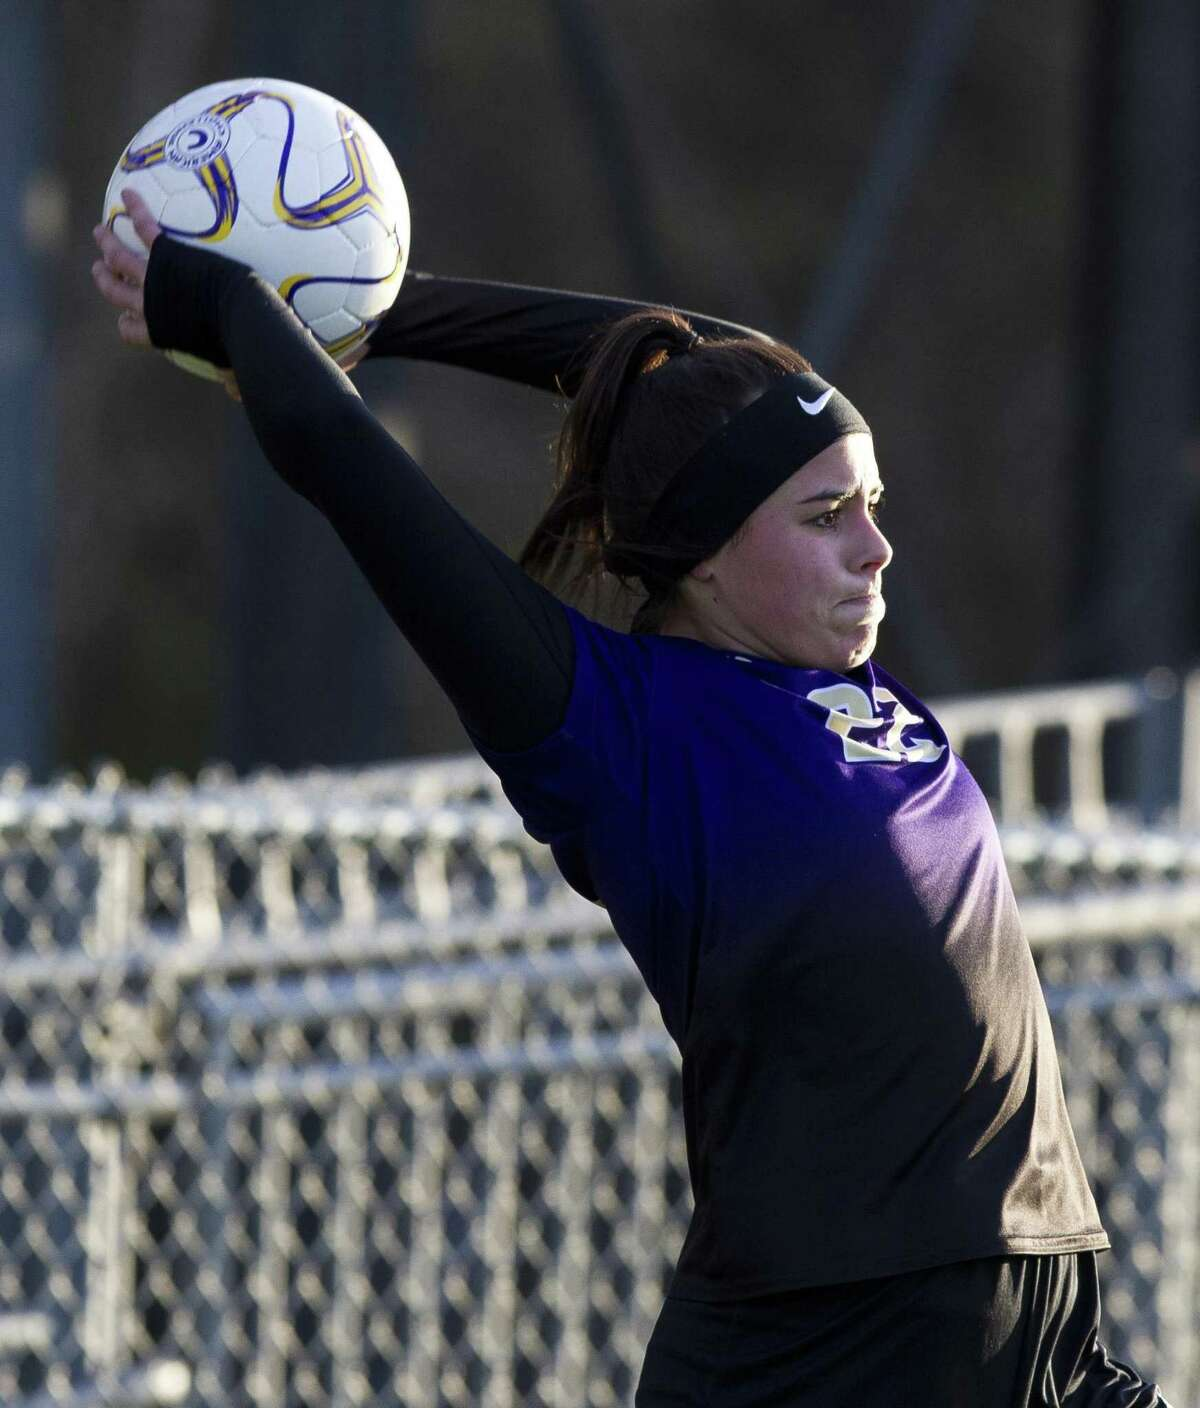 Montgomery midfielder Zoey Prelli (22) throws the ball in bounds during the first period of a District 20-5A high school soccer match at Montgomey High School, Tuesday, March 5, 2019, in Montgomery.